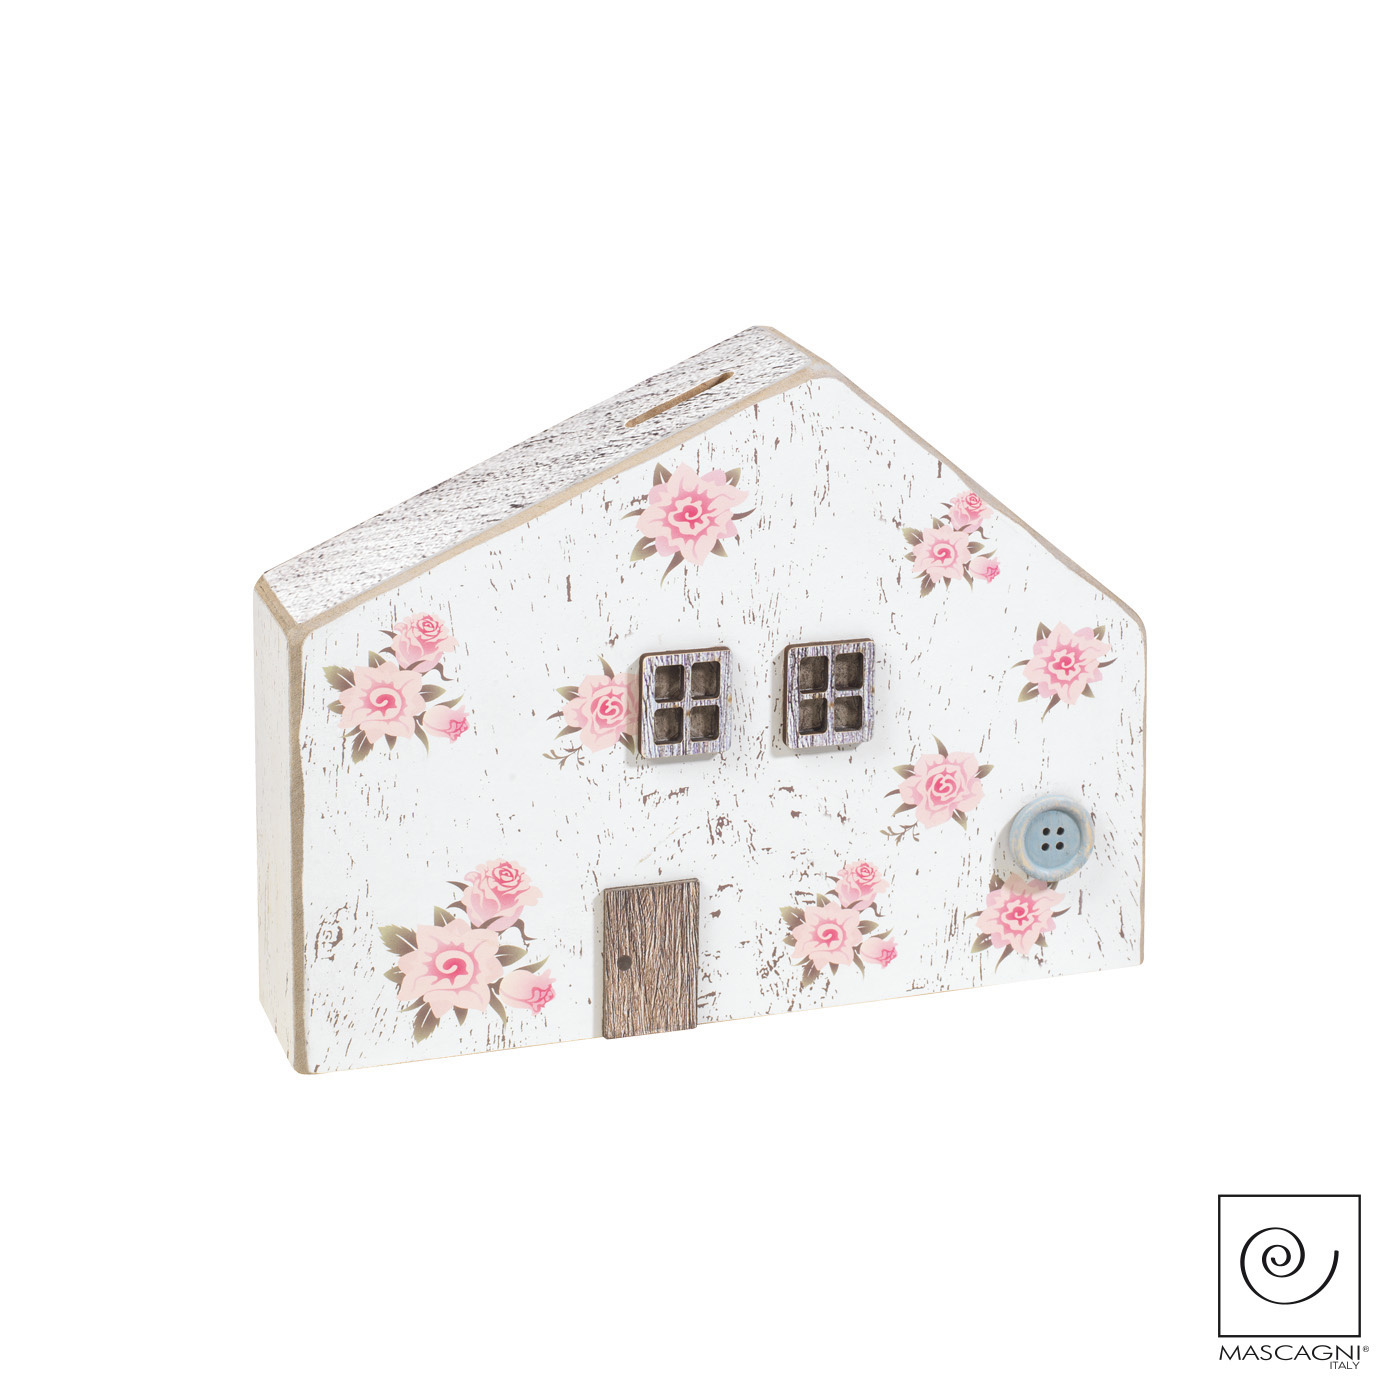 Art Mascagni A953 MONEY BOX